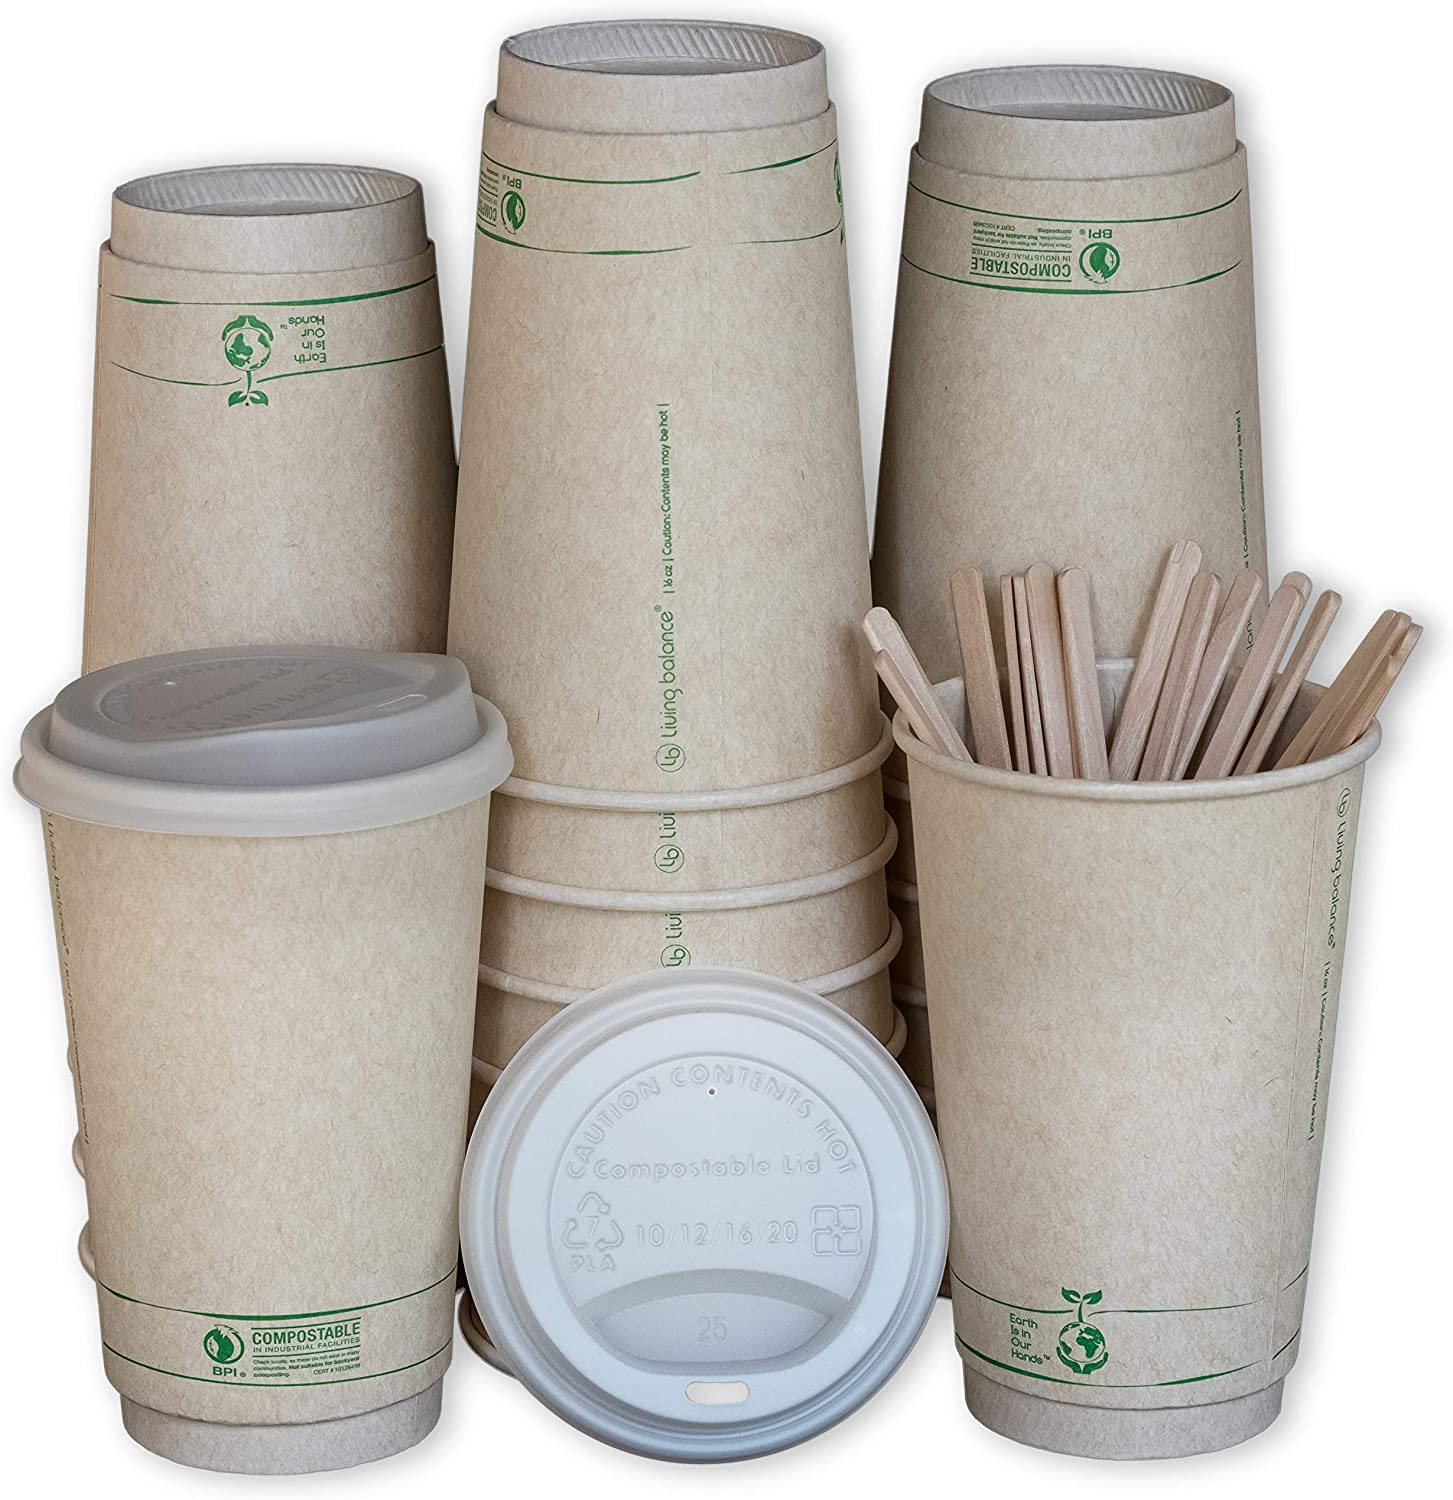 Disposable Compostable Coffee Cups with Lids, Stirrers, and Sleeves. [75 Pack - 16 Ounce]